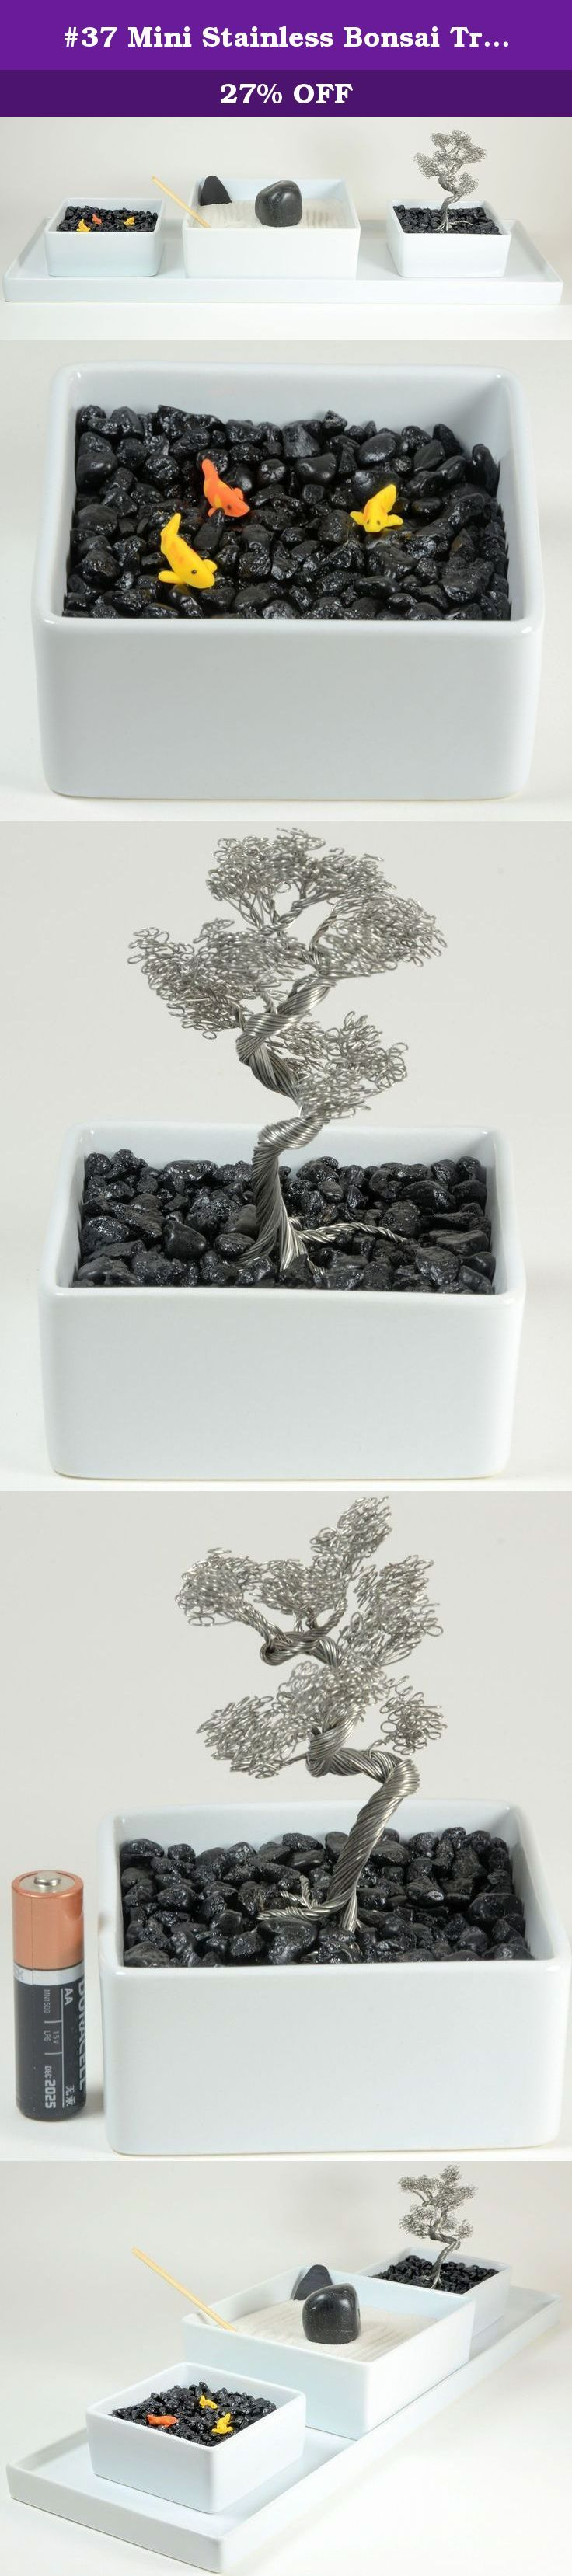 1000 Ideas About Bonsai Tree Price On Pinterest Zelkova Bonsai